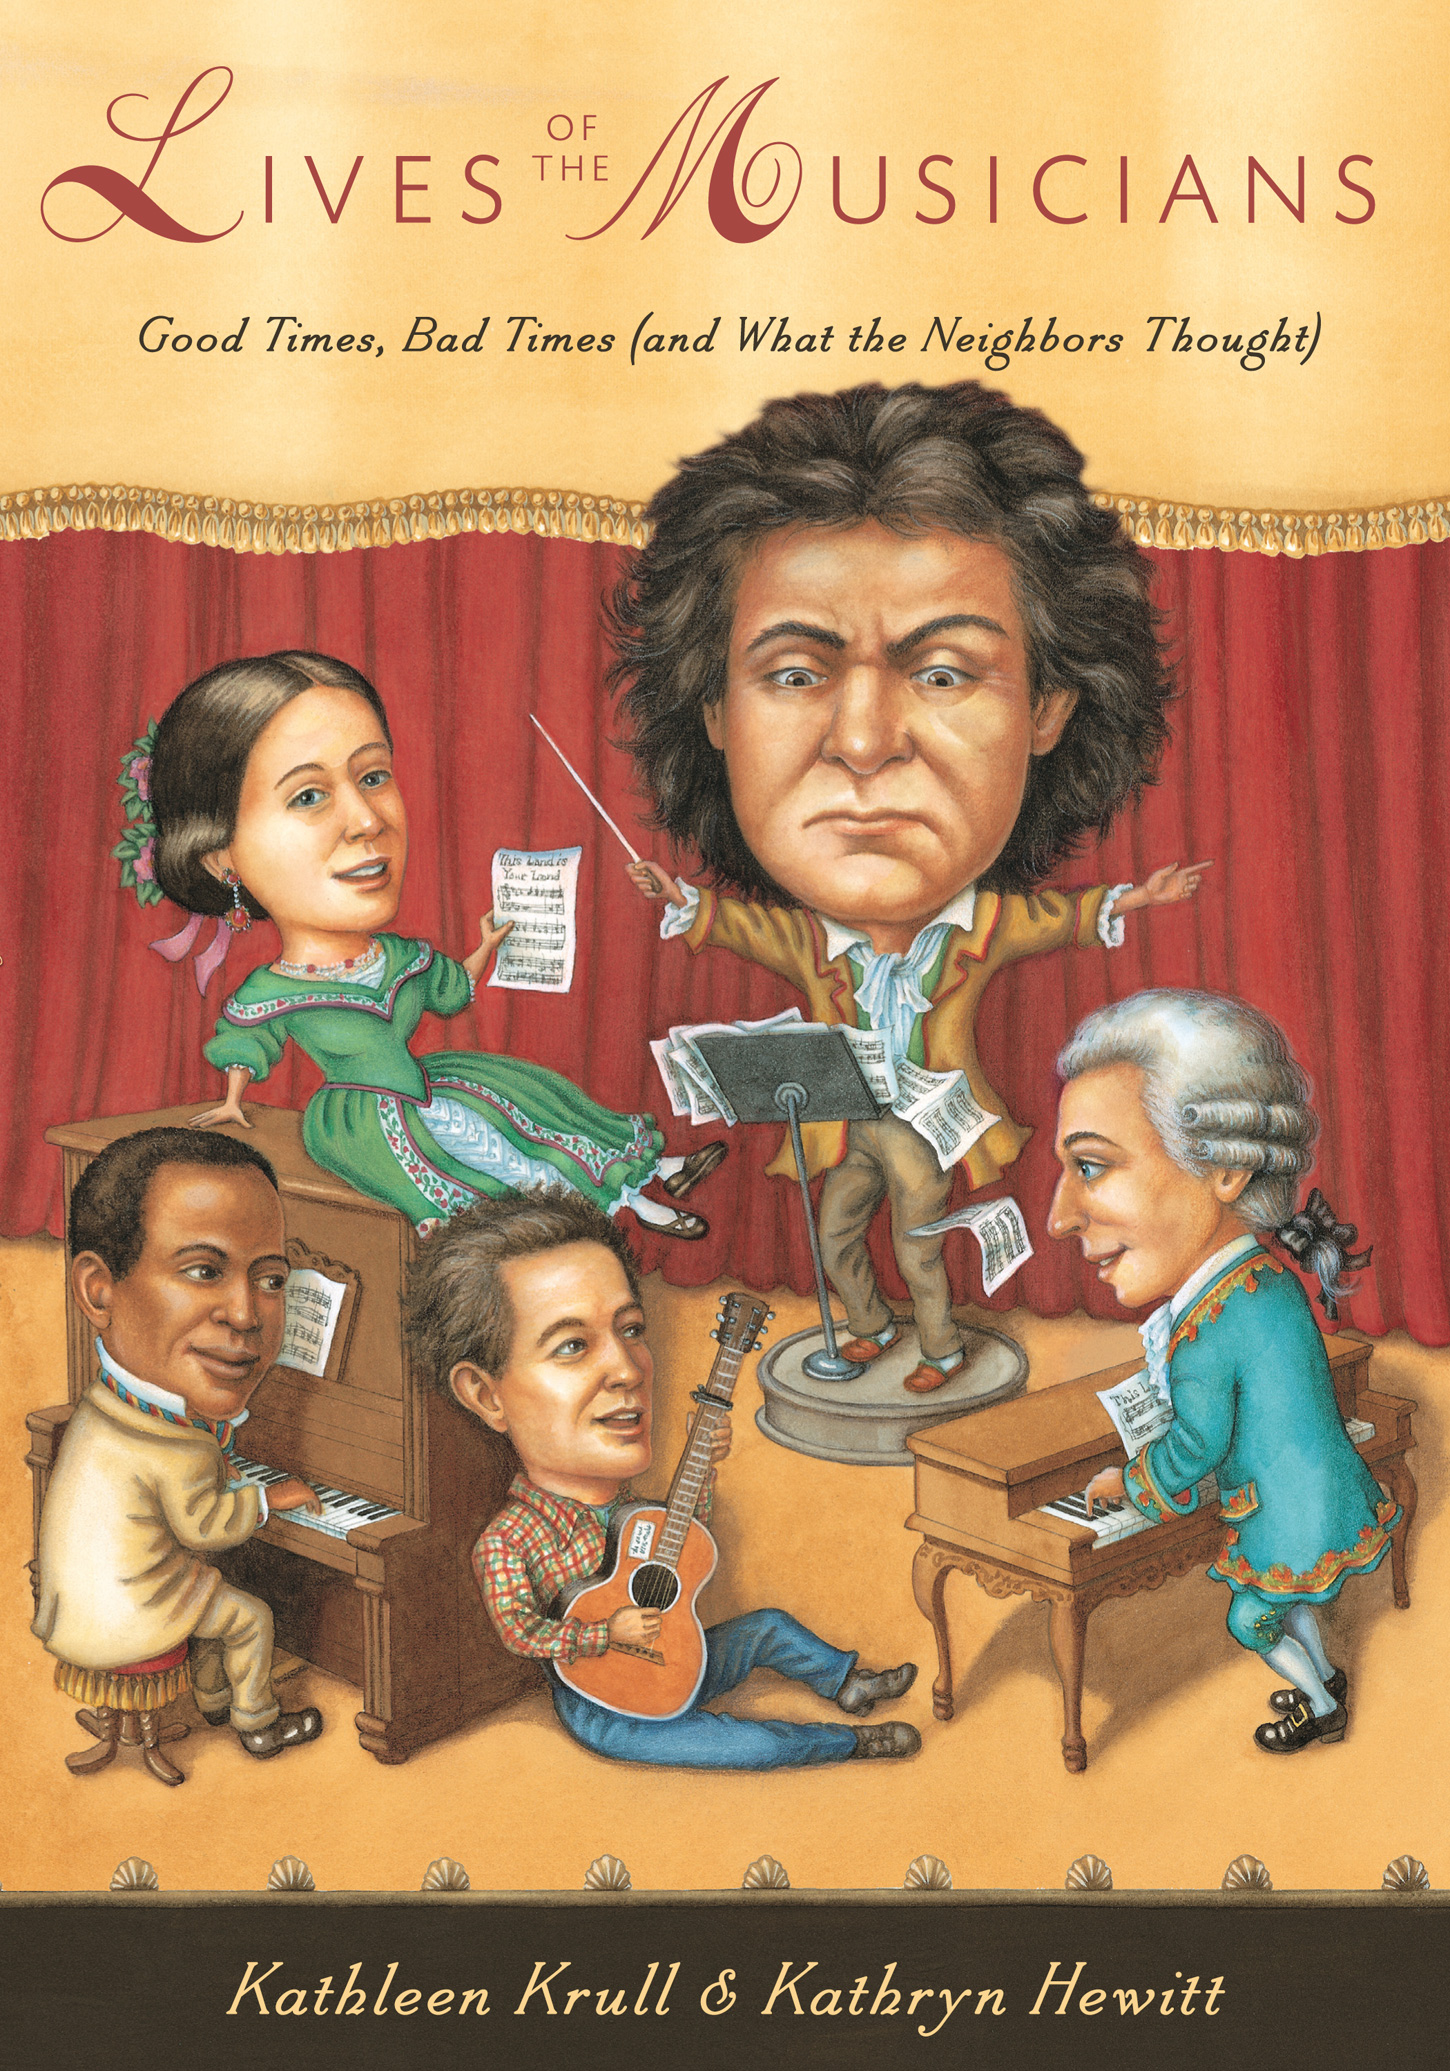 "Lives of the Musicians: Good Times, Bad Times (and What the Neighbors Thought) - Kathleen Krull, illustrated by Kathryn Hewitt       Houghton Mifflin Harcourt 2013Here are the life stories of such diverse figures as Vivaldi, Mozart, Scott Joplin, Nadia Boulanger, and Woody Guthrie. Readers will learn of both their musical natures and the personal, humorous characteristics that make their lives so fascinating. ""Living, breathing anecdotes--the stuff of which the best biography is made."" --Publishers Weekly"